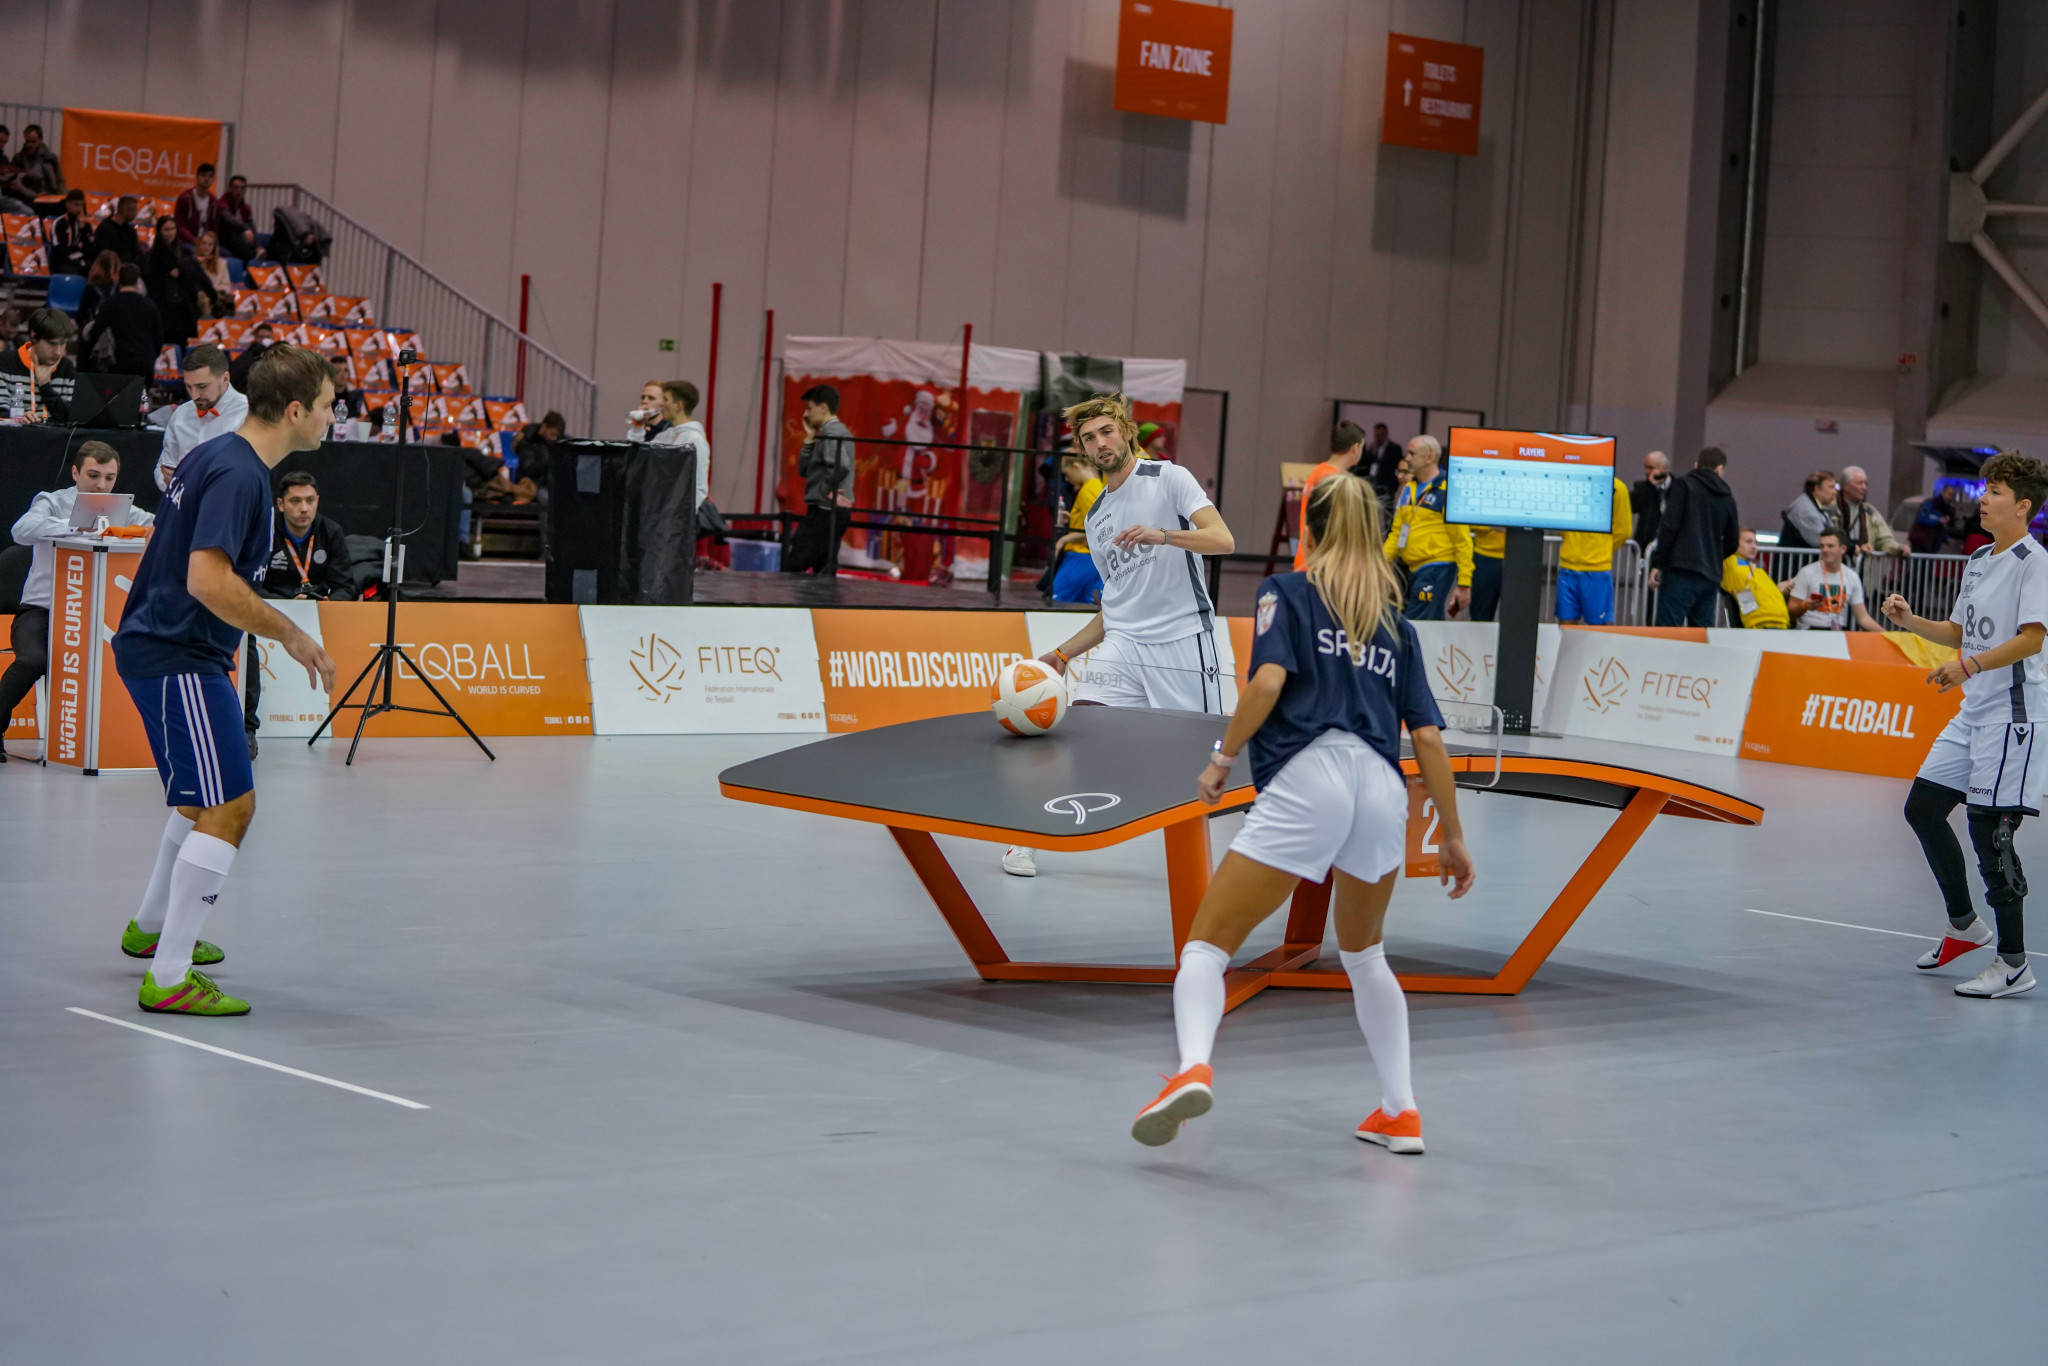 Competition took place during the day in the doubles and mixed doubles events ©FITEQ